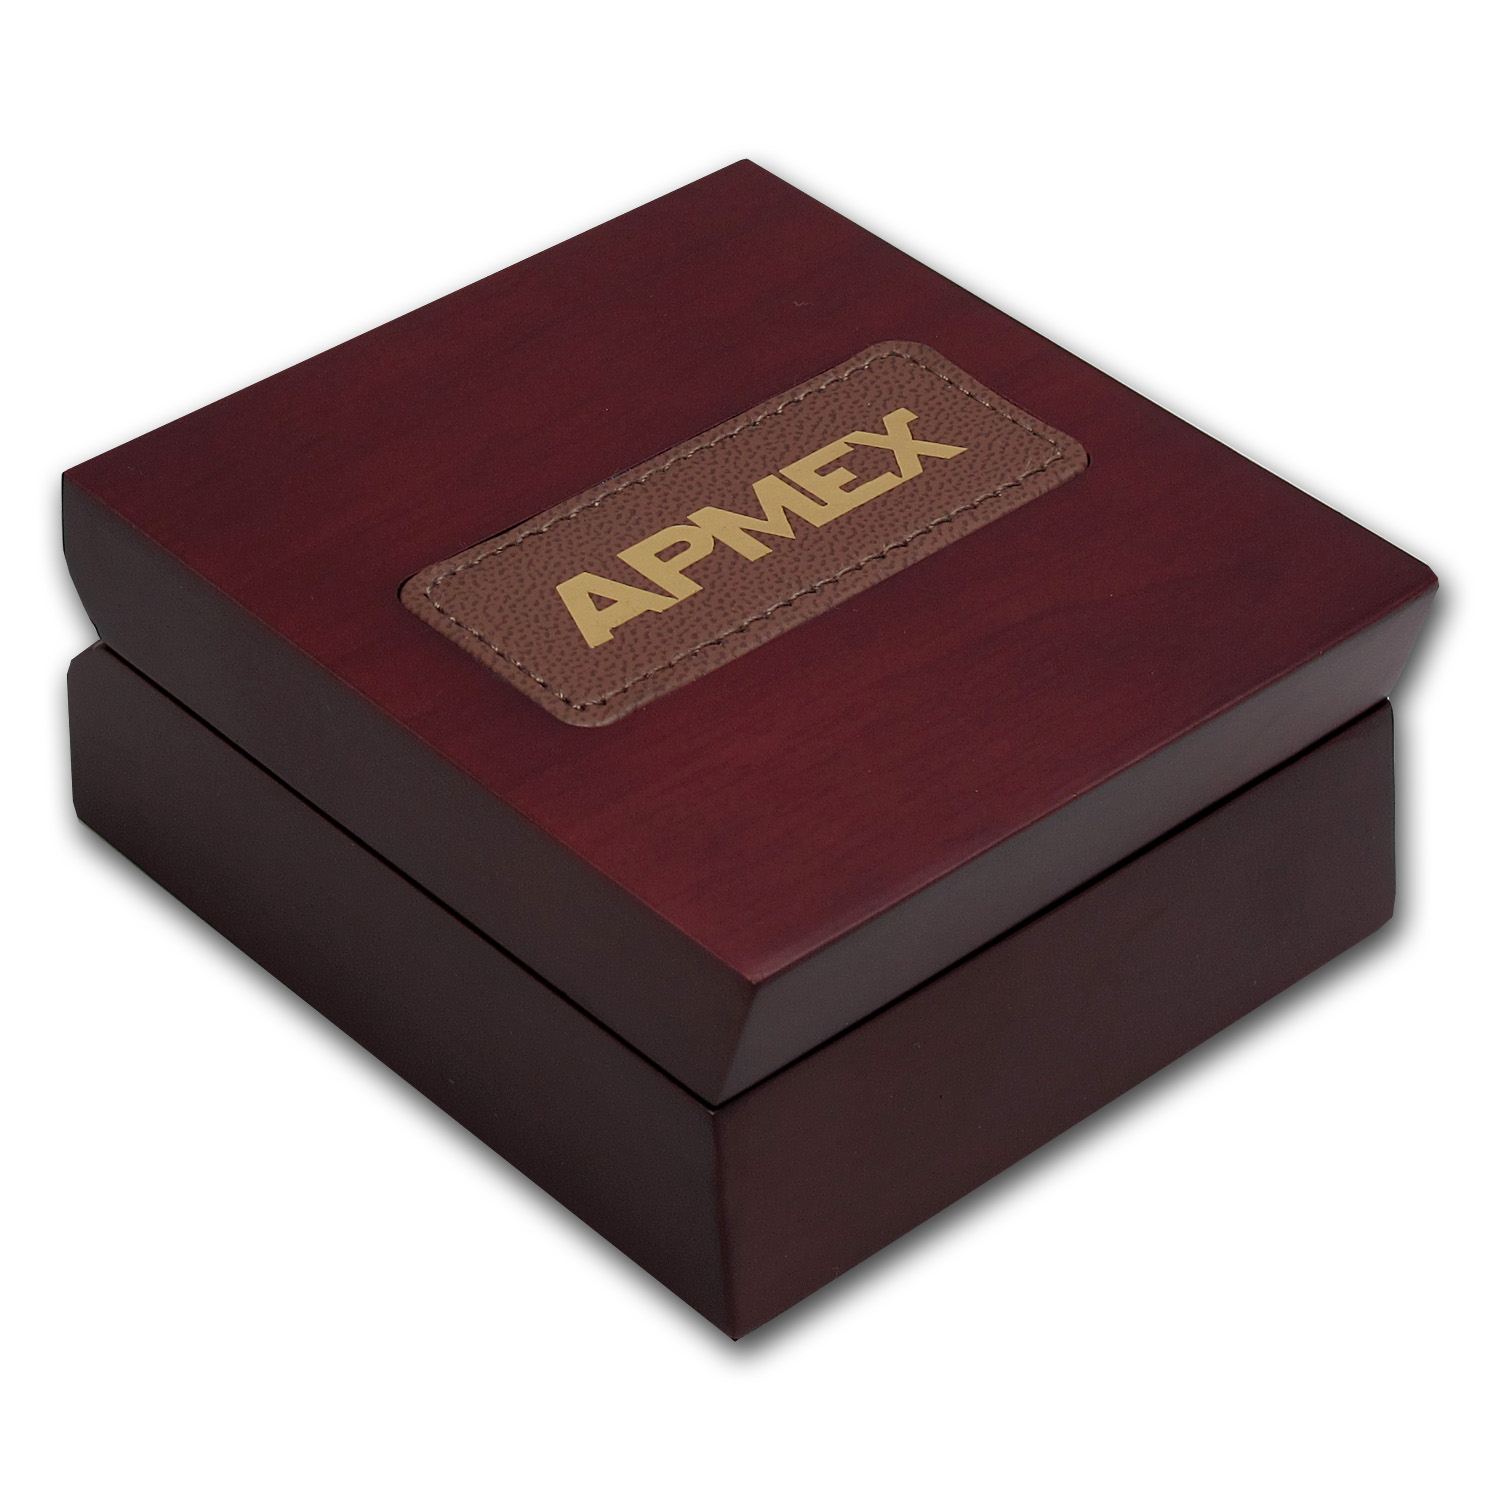 APMEX Wood Presentation Box - 1/20 oz Perth Gold Series 1 & 2